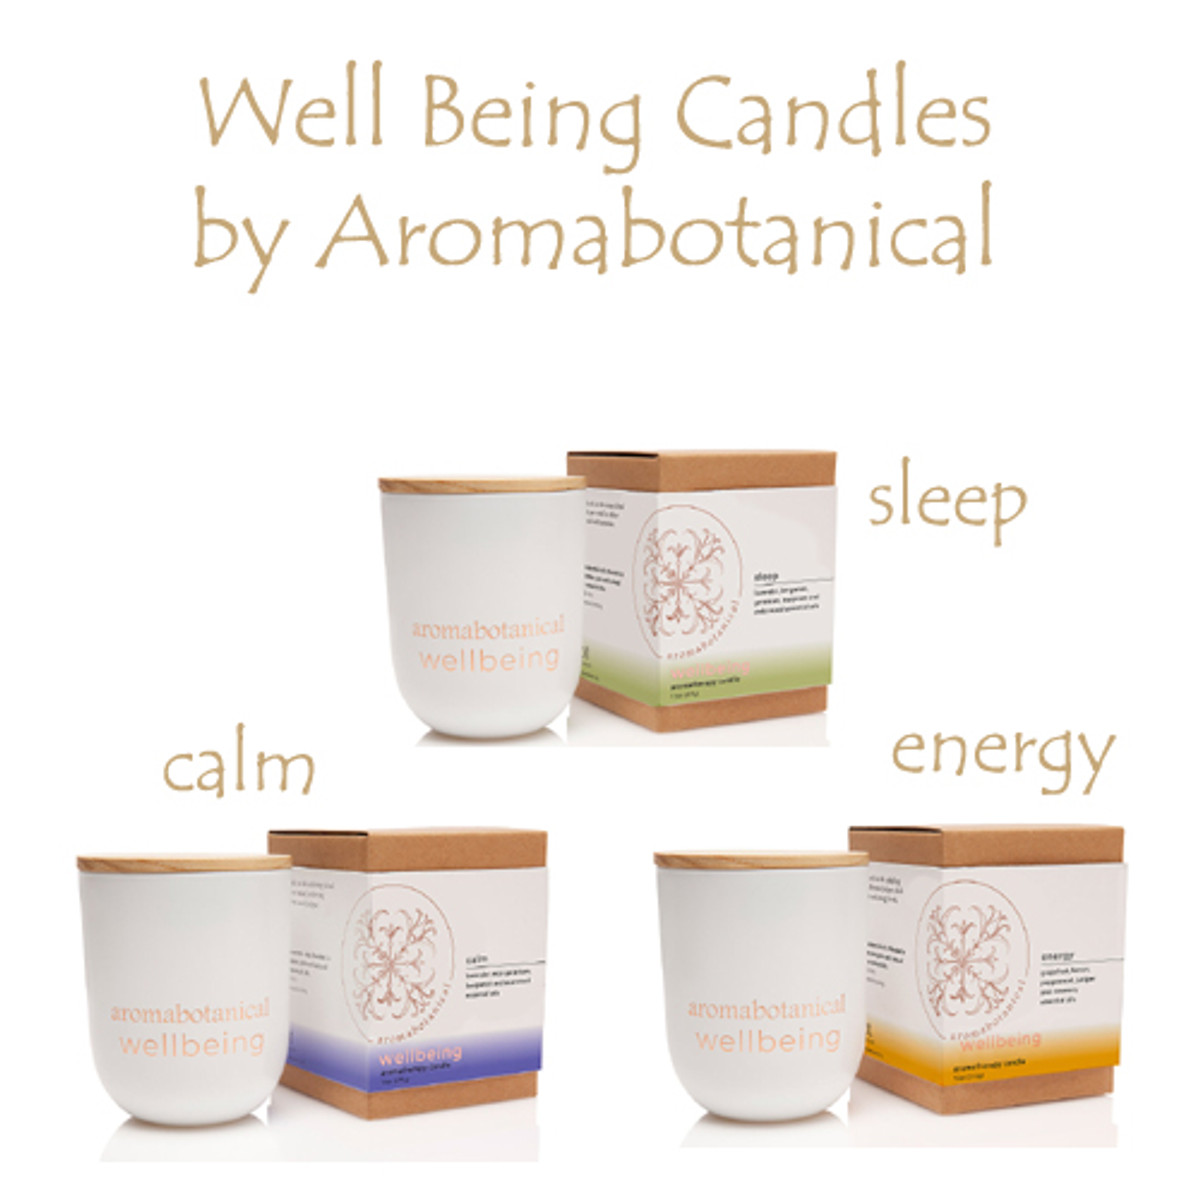 Well being-candle